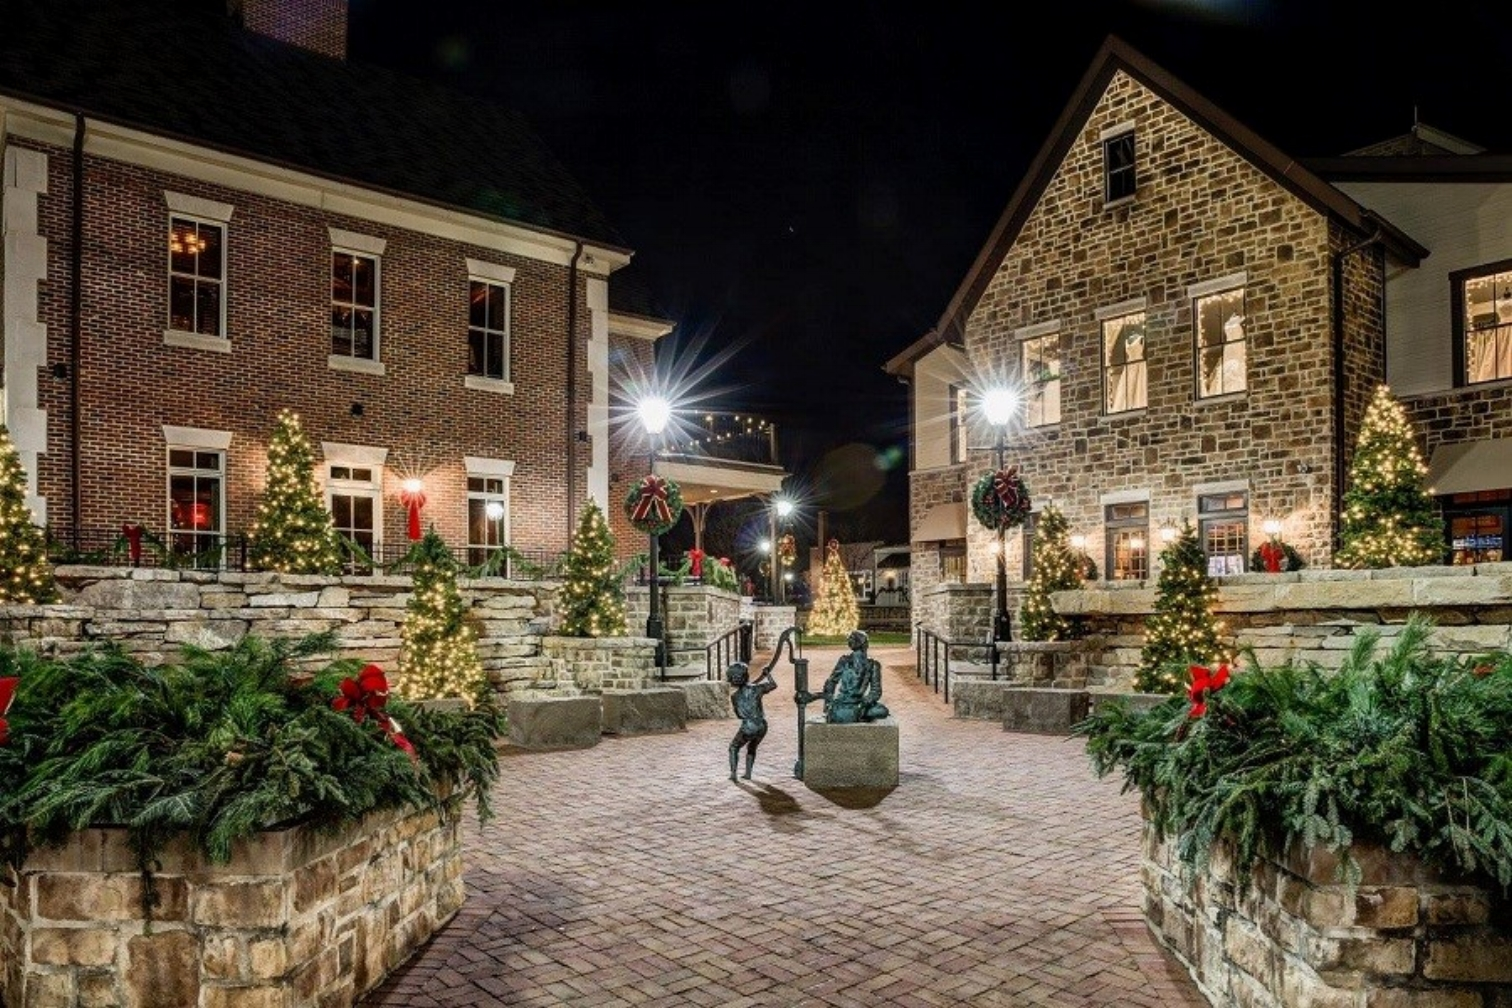 A cobblestone street with two historic brick buildings aglow with decorated christmas trees and planters full of red poinsettia flowers